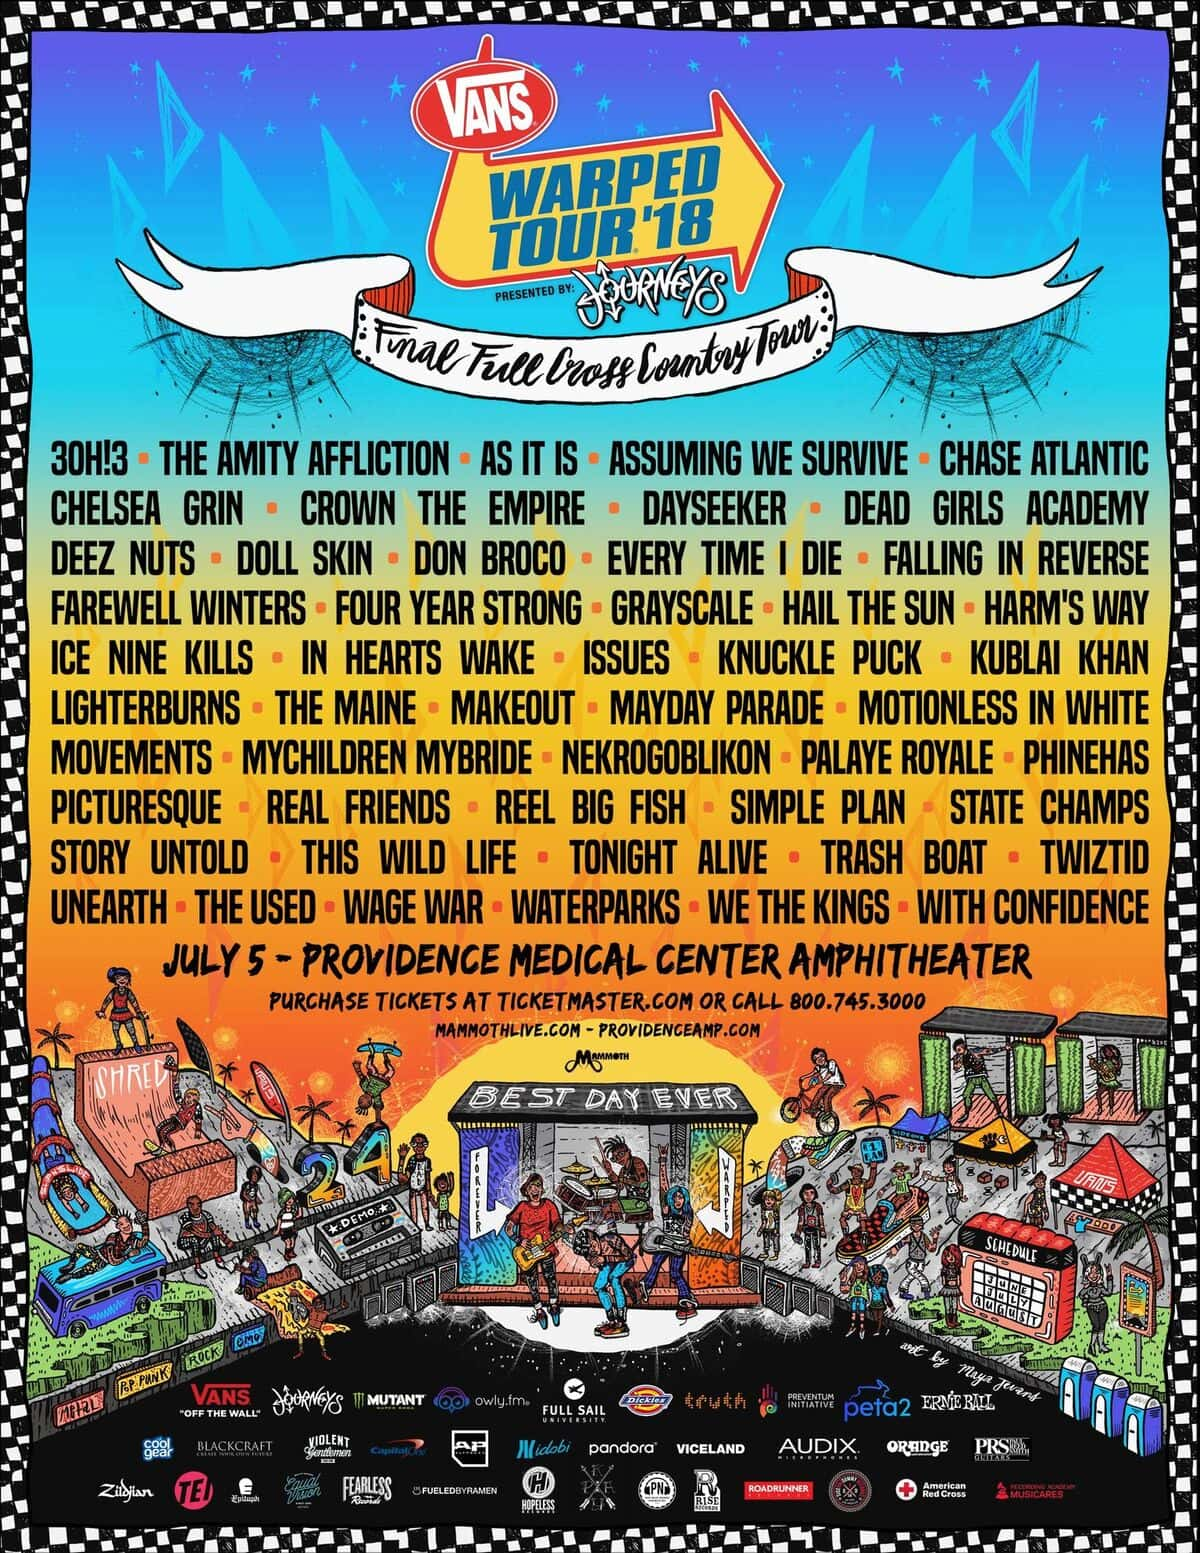 Vans warped tour 2018 mix933 vans warped tour 2018 m4hsunfo